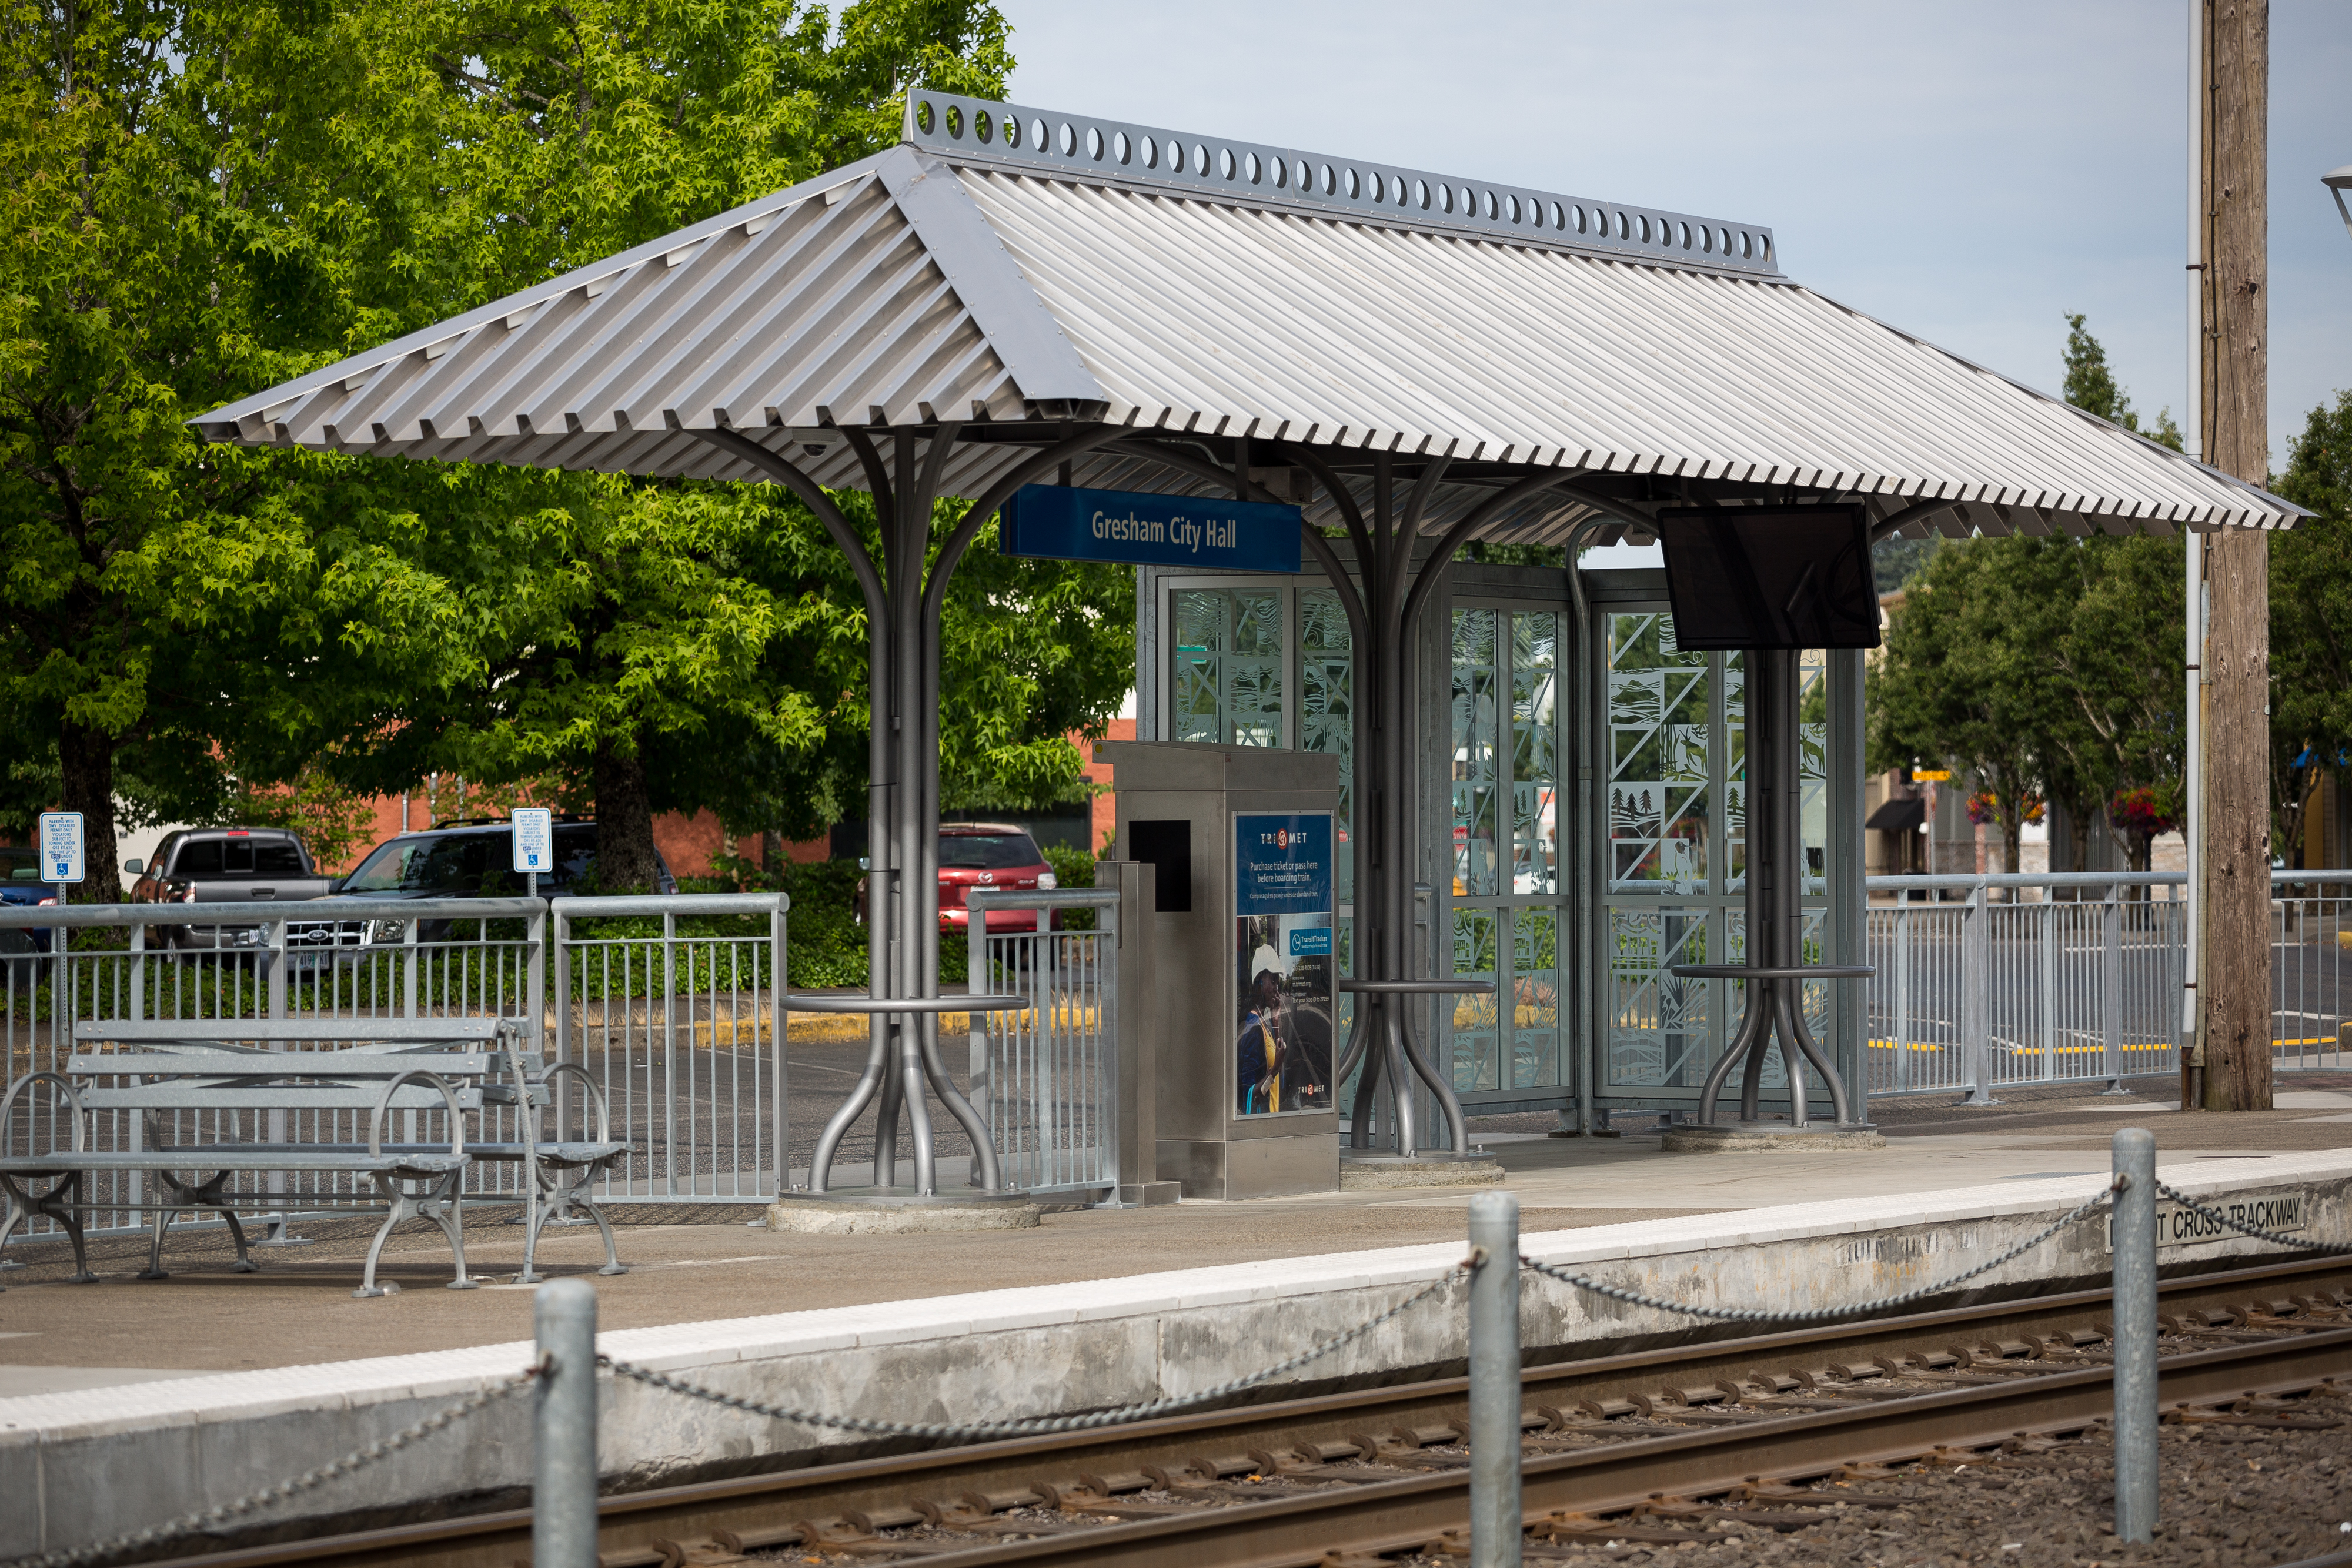 TriMet Blue MAX Line Gresham City Hall Station